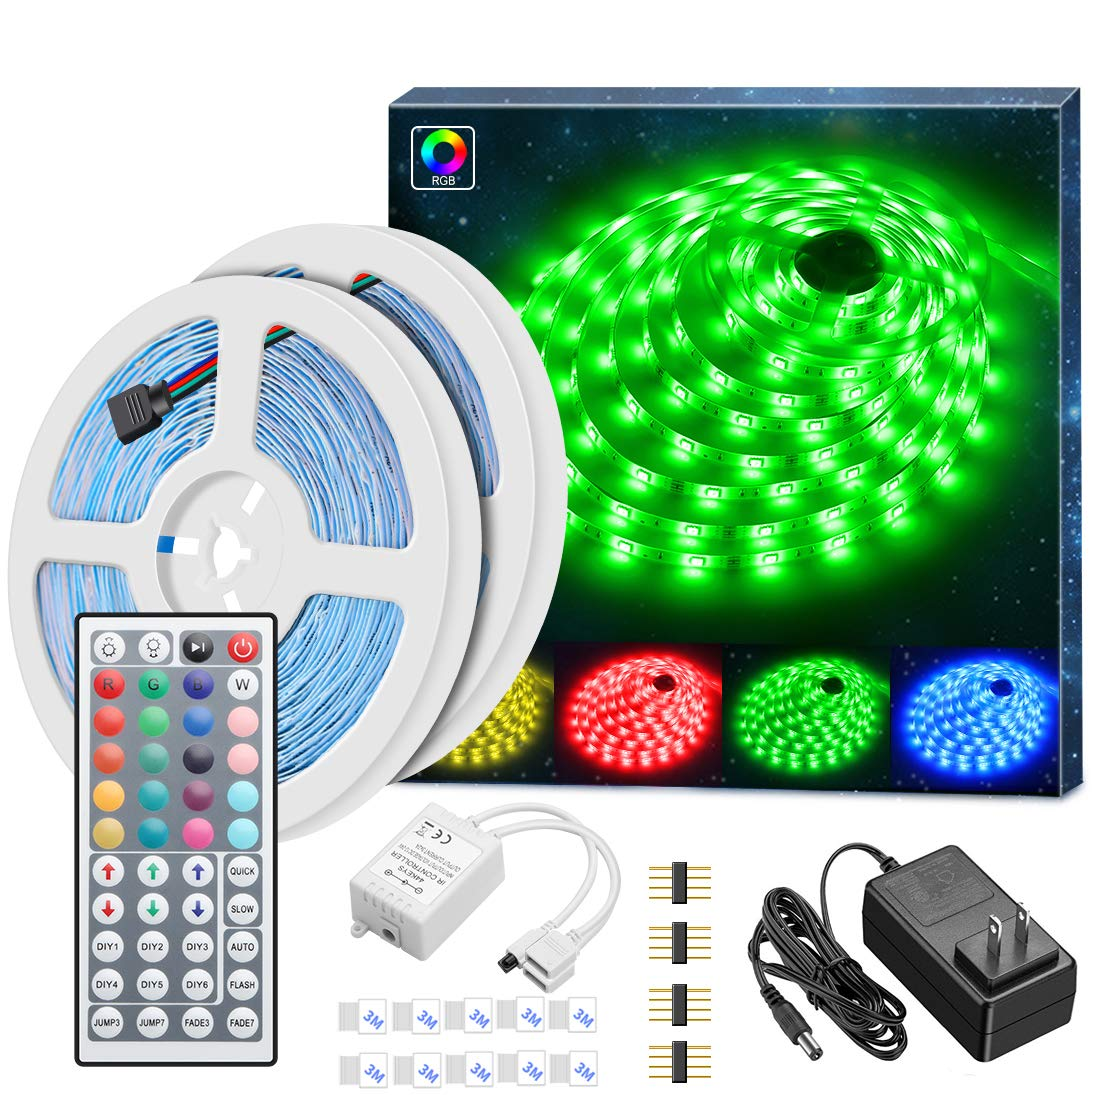 MINGER Led Strip Lights Kit, 32.8Ft RGB Light Strip with Remote, Controller Box and Support Clips Ideal for Room, Bedroom, Home, Kitchen Cabinet, Party Decoration 12V/3A Power Supply, Non-Waterproof